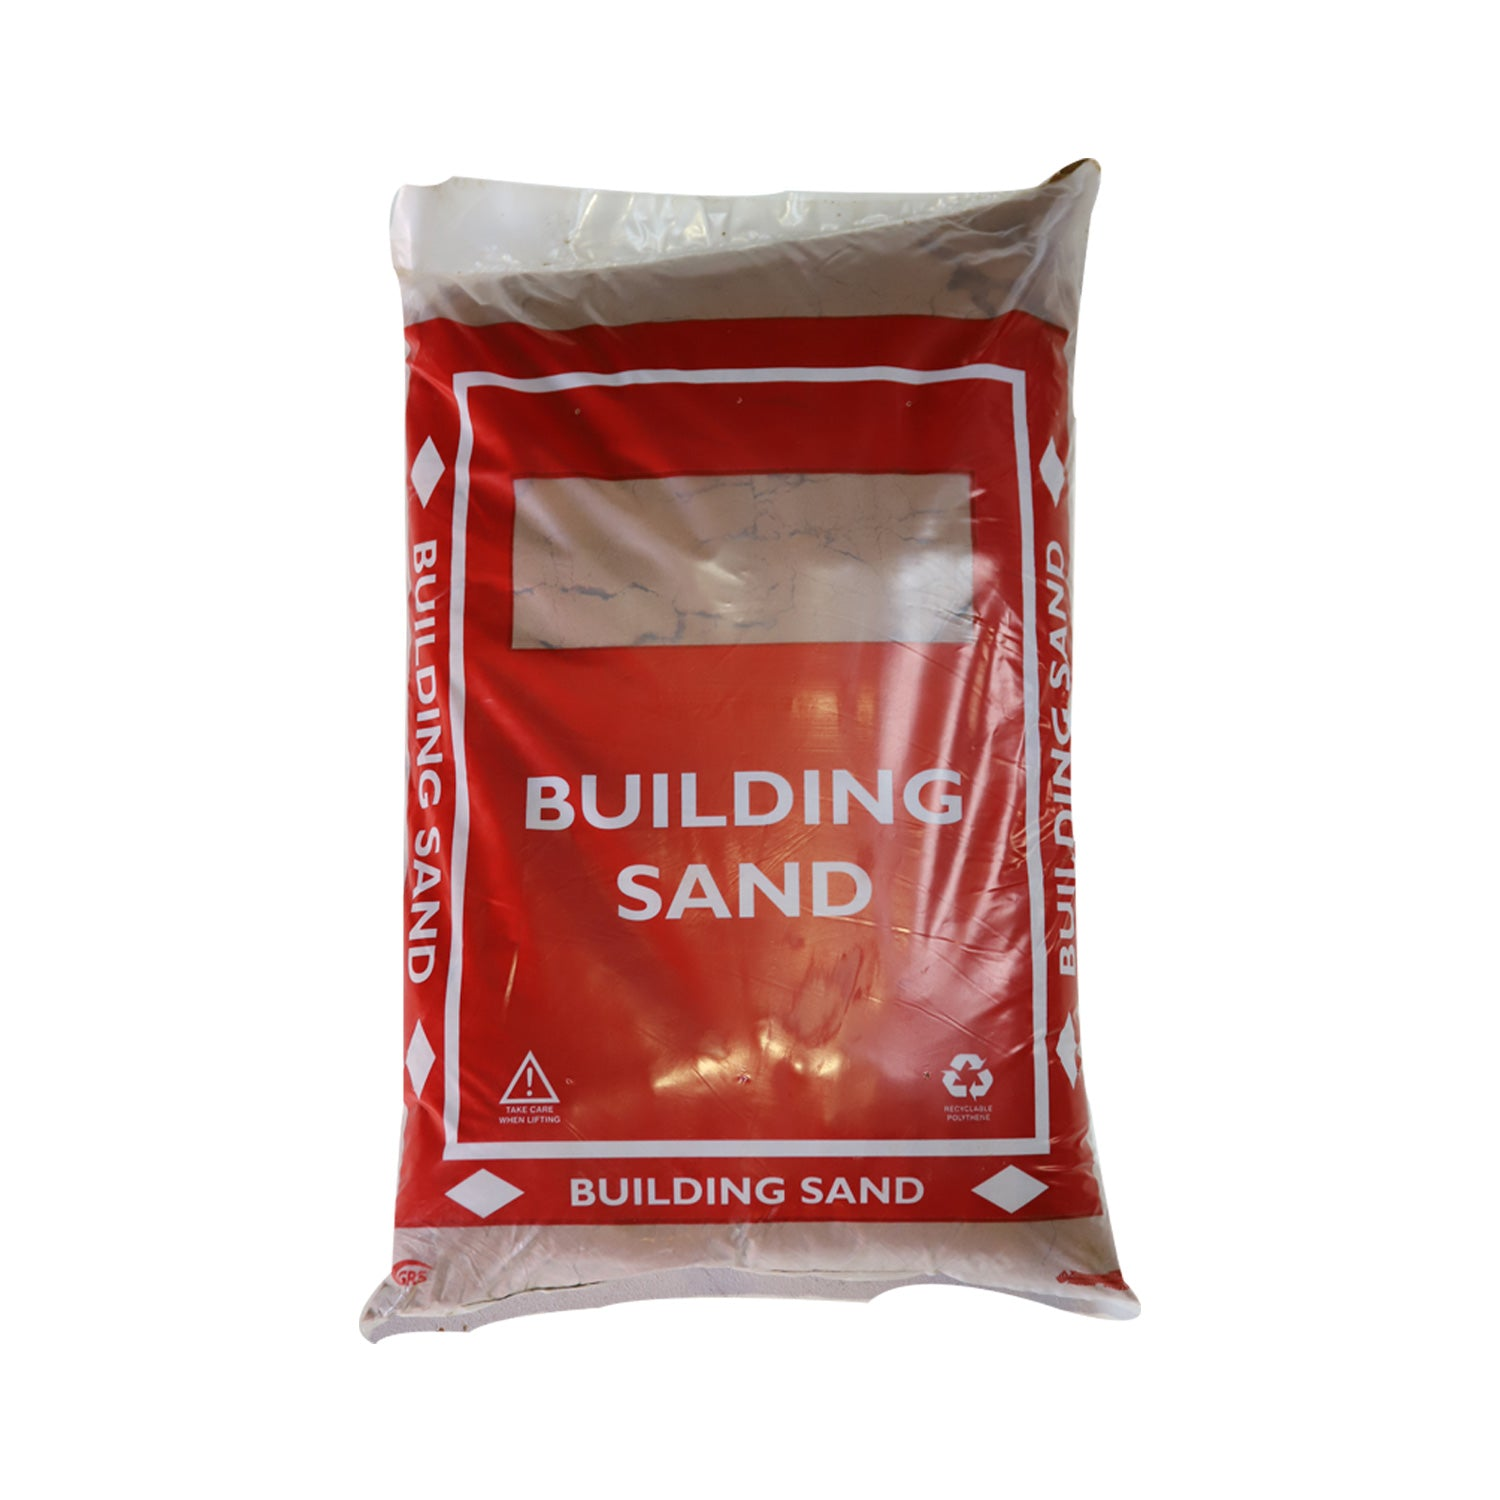 Building Sand 40kg Maxi Bag